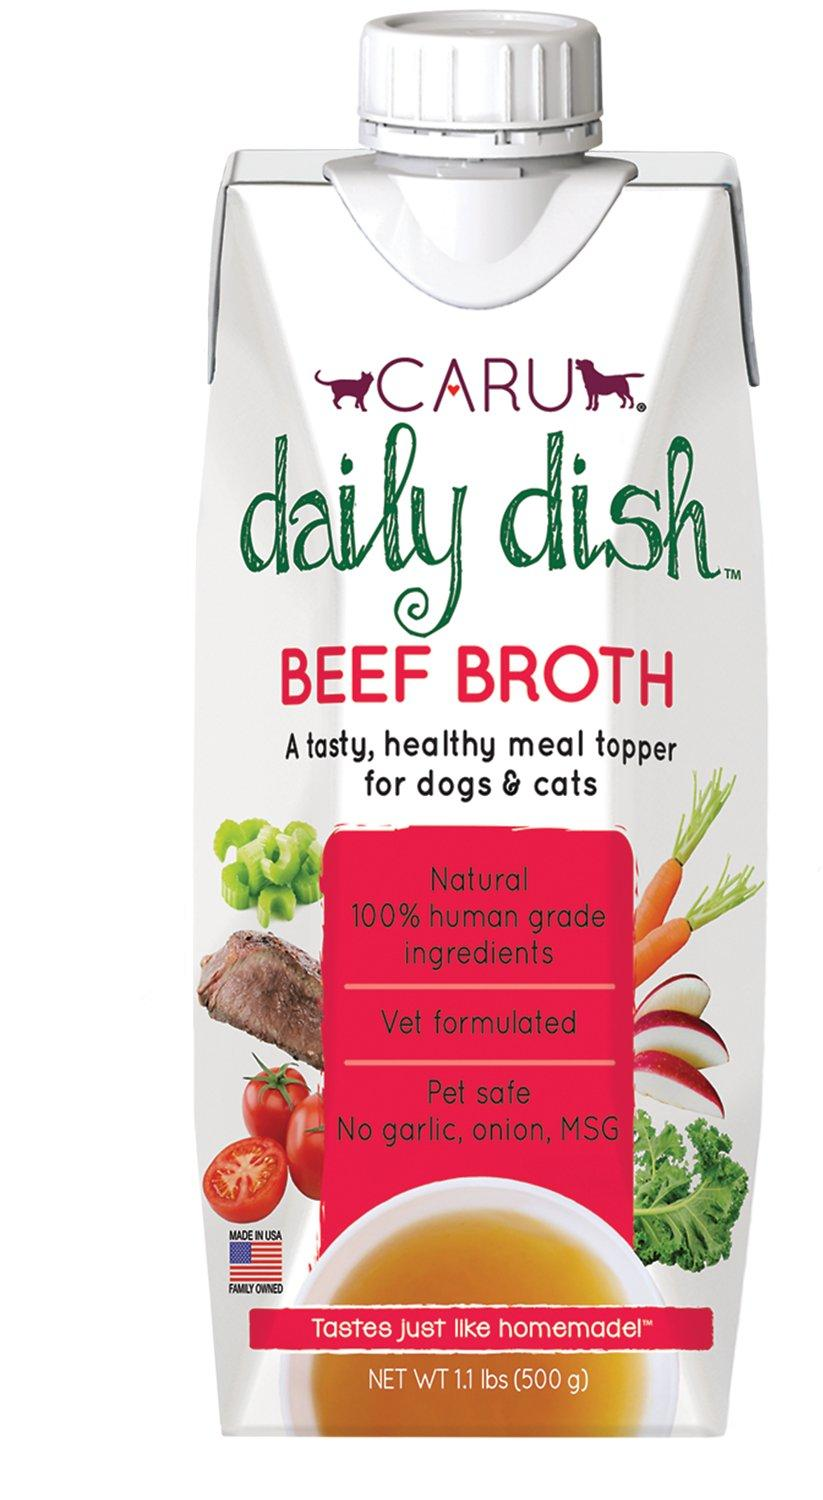 Caru Daily Dish Beef Broth Dog & Cat Wet Food Topper, 1.1-lb